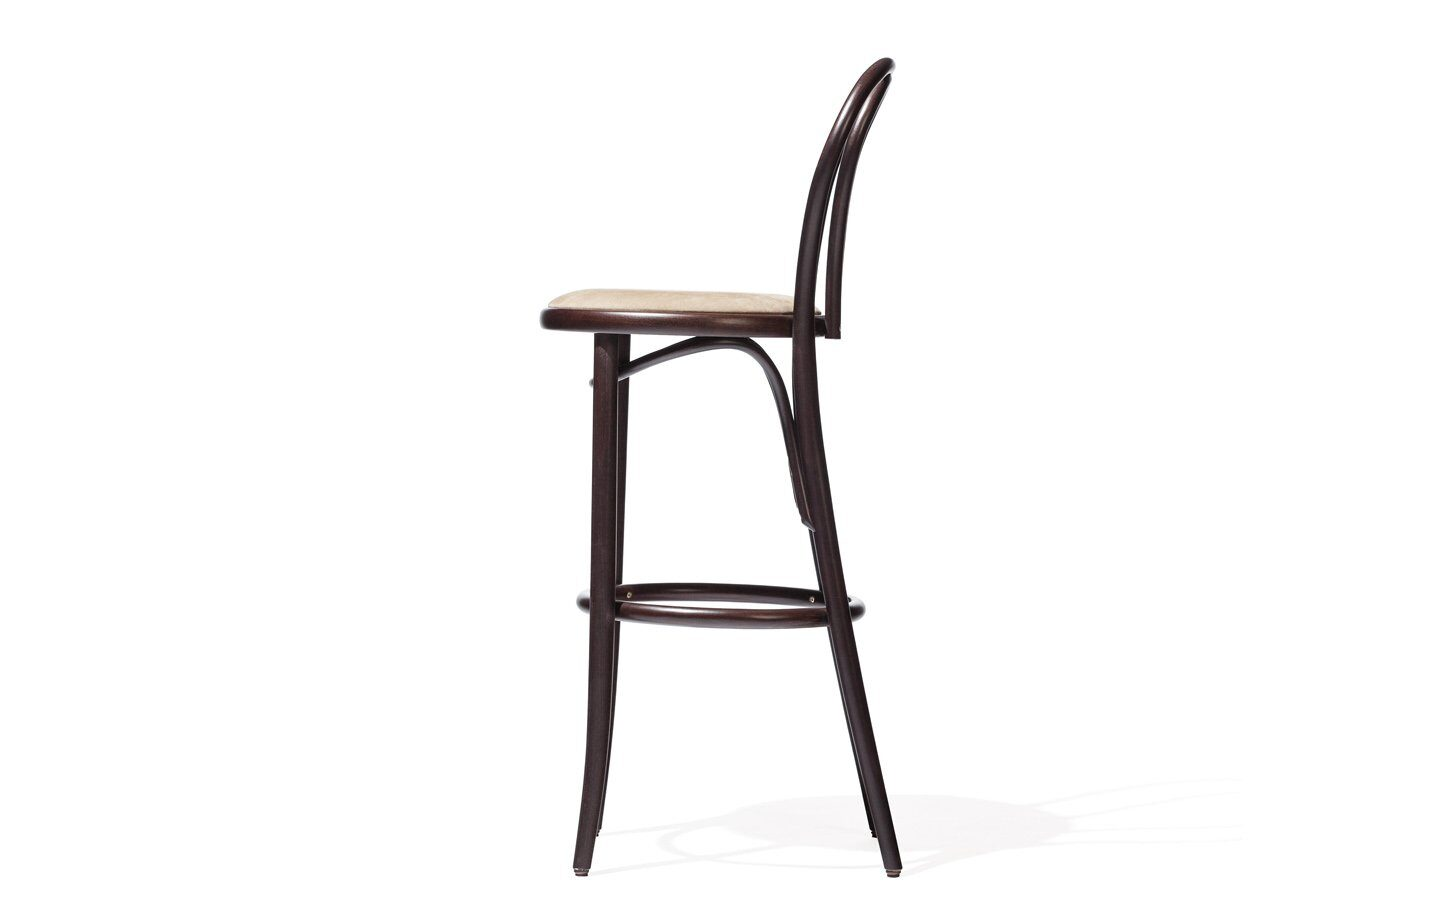 18-Barstool-Bent-wood-Upholstery-seat-Ton-03